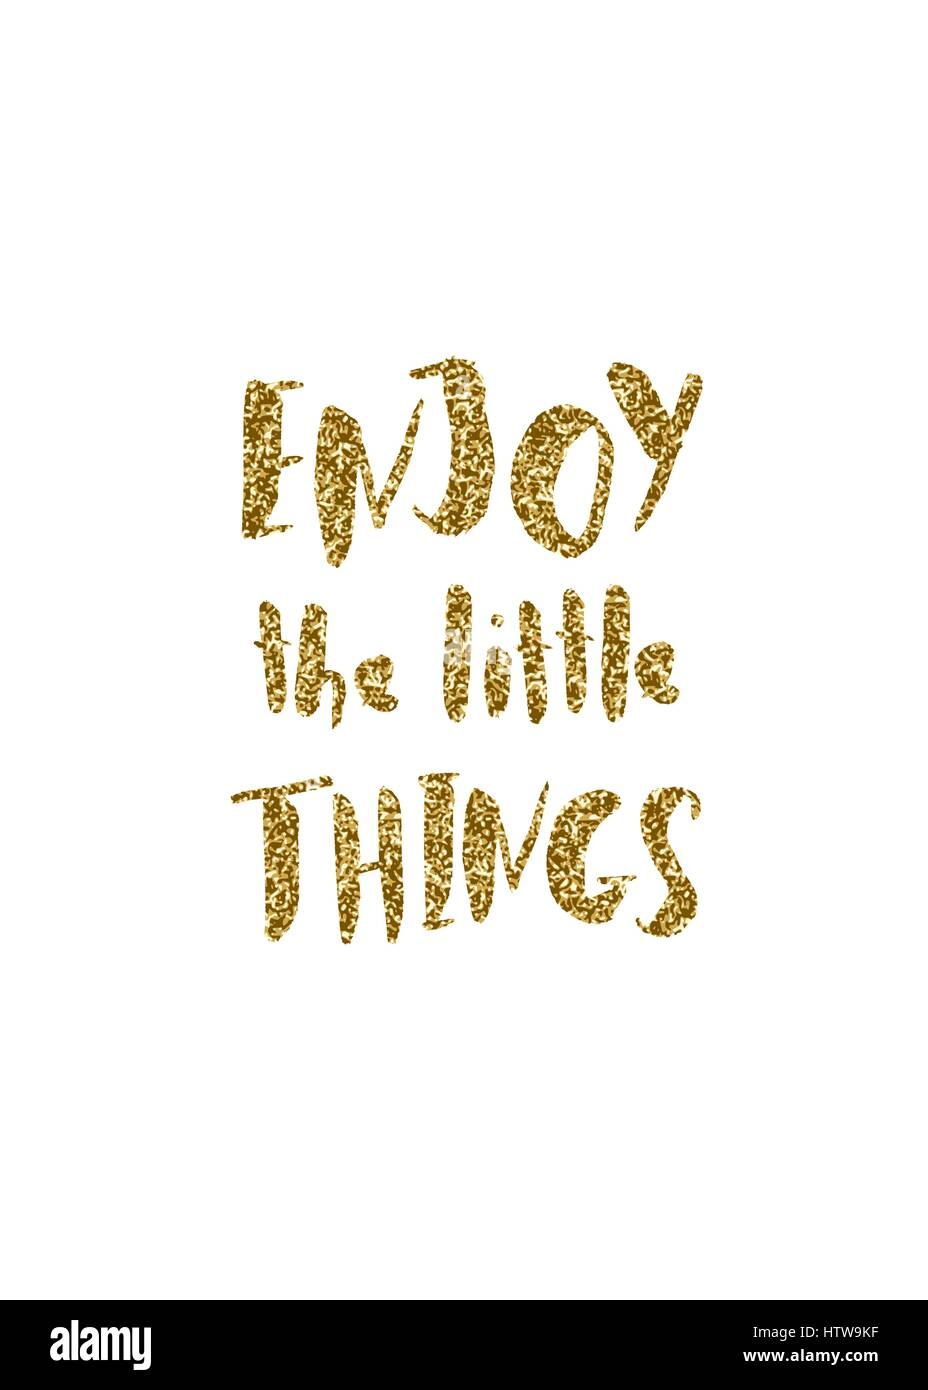 Enjoy The Little Things   Inspirational Quote Poster Design. Hand Lettered  Text In Gold Glitter On White.